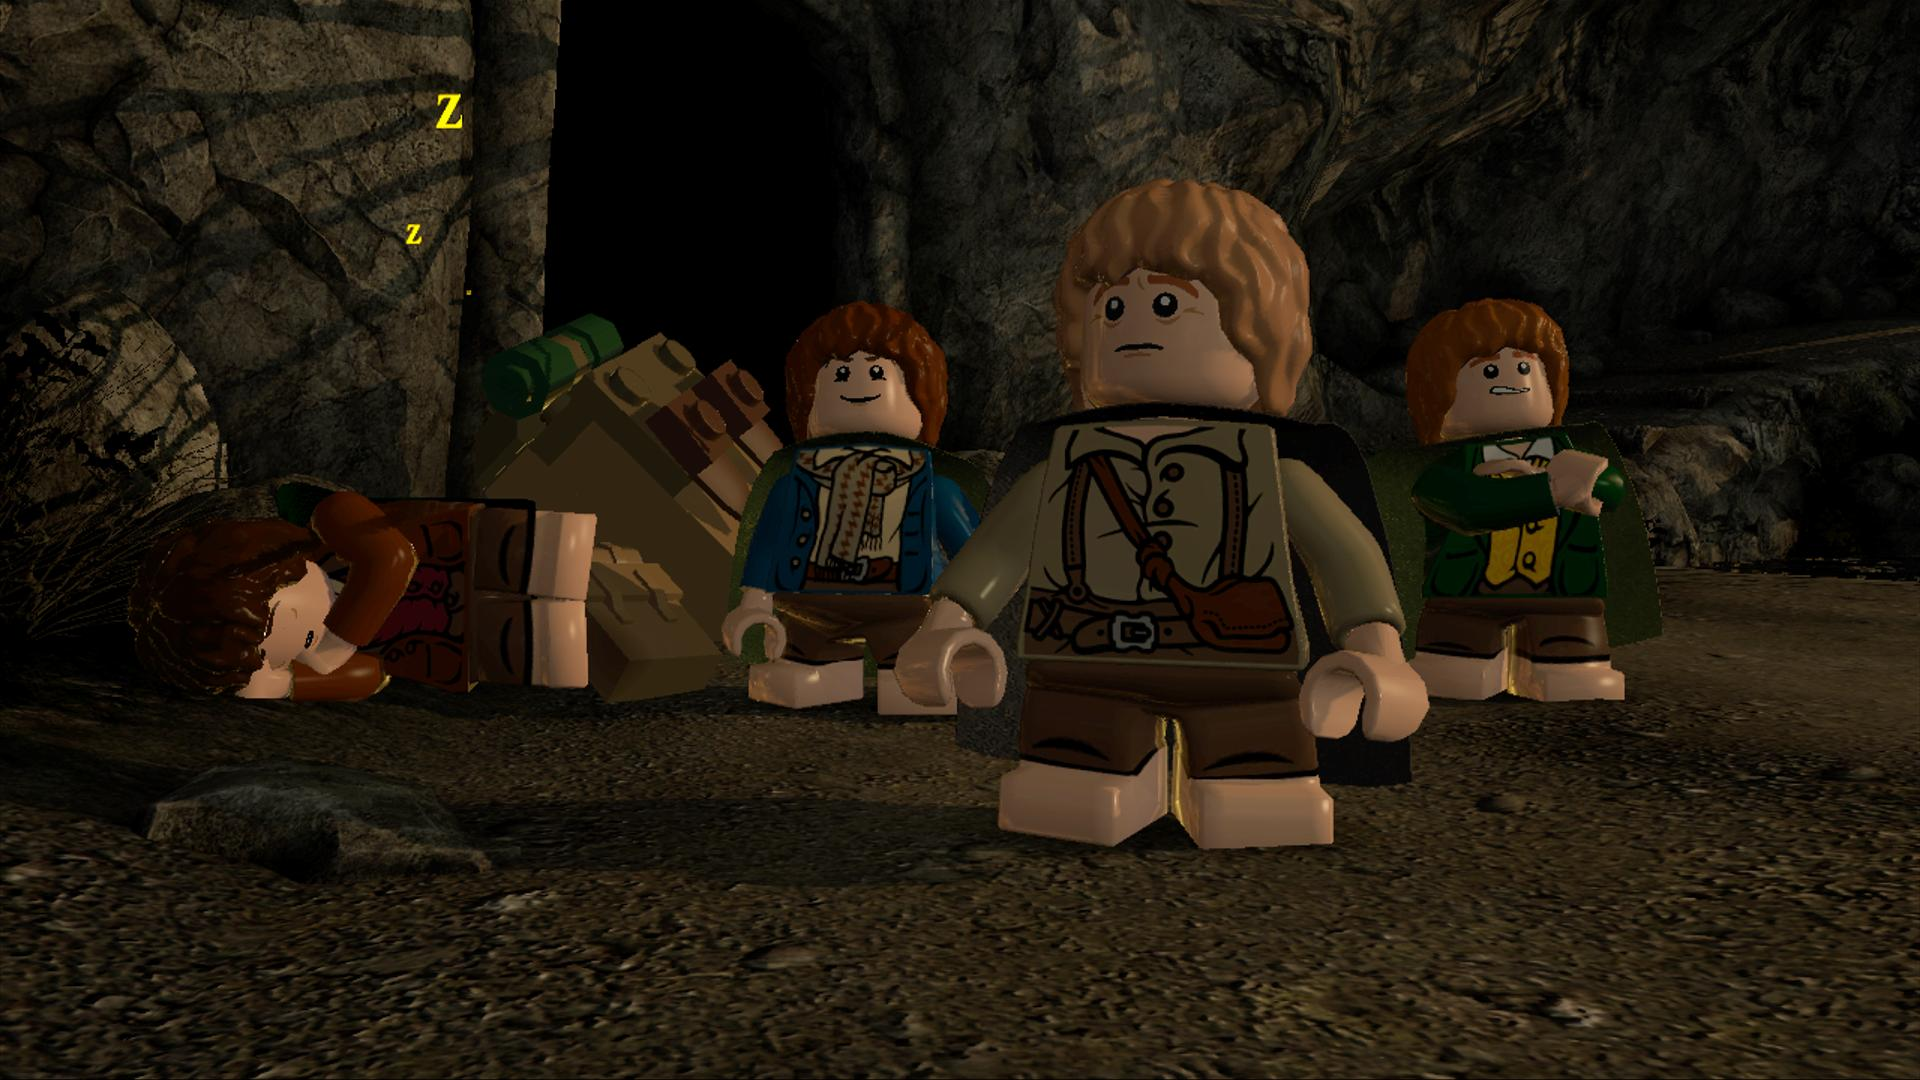 Will Lego Lord Of The Rings Be Any Good Who Knows It Adorable Looks That Way